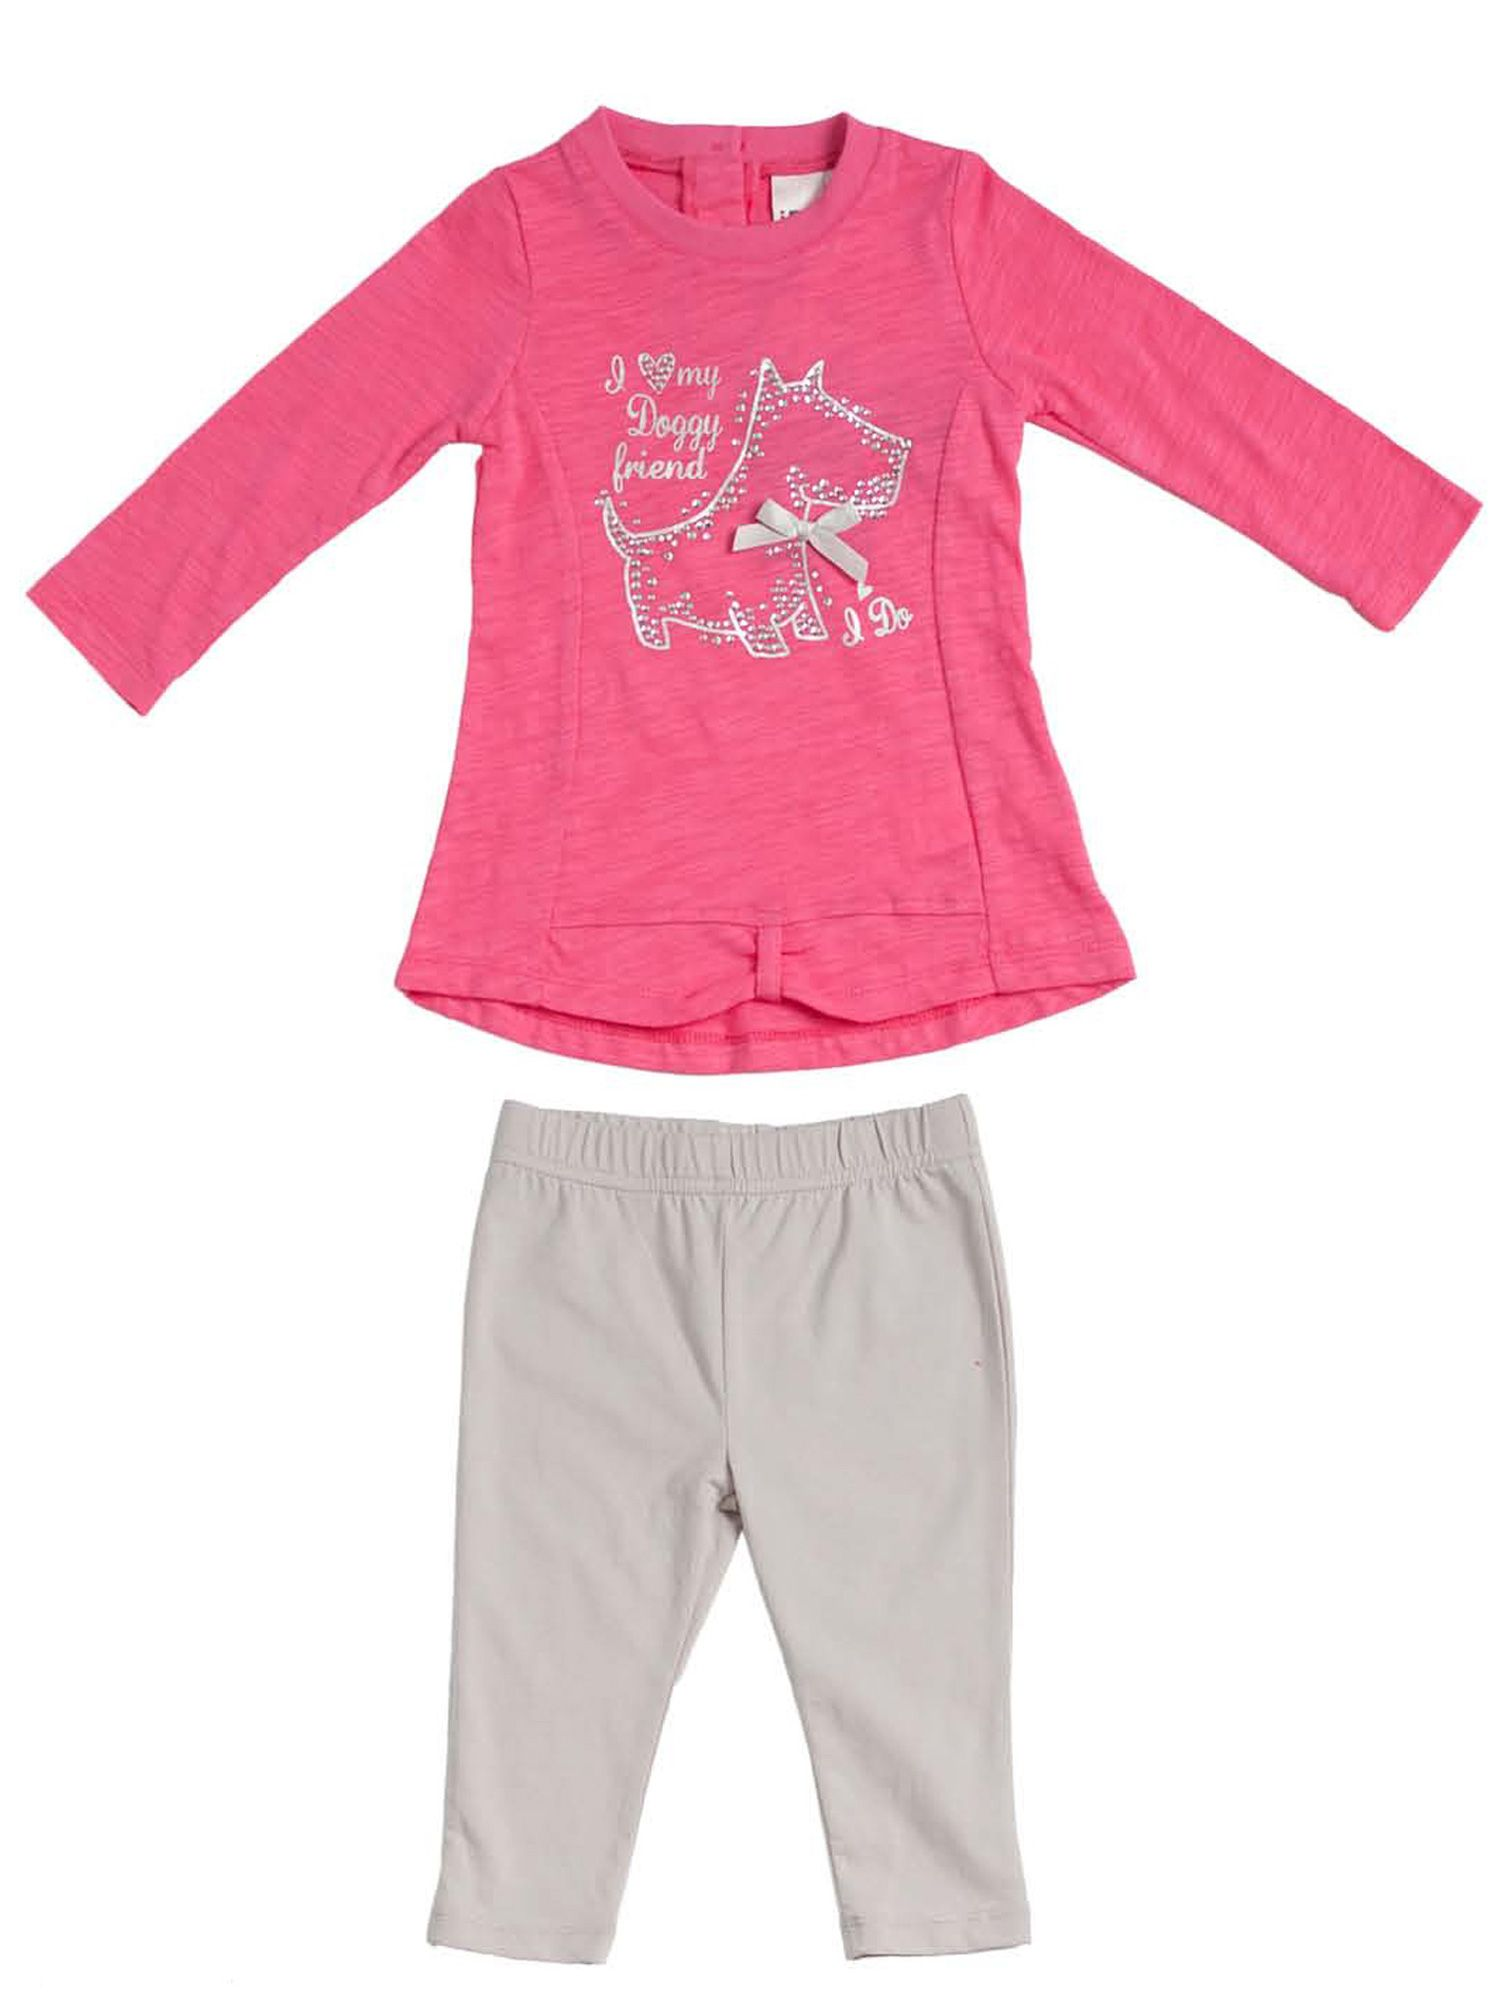 Girls long sleeve top and leggings set